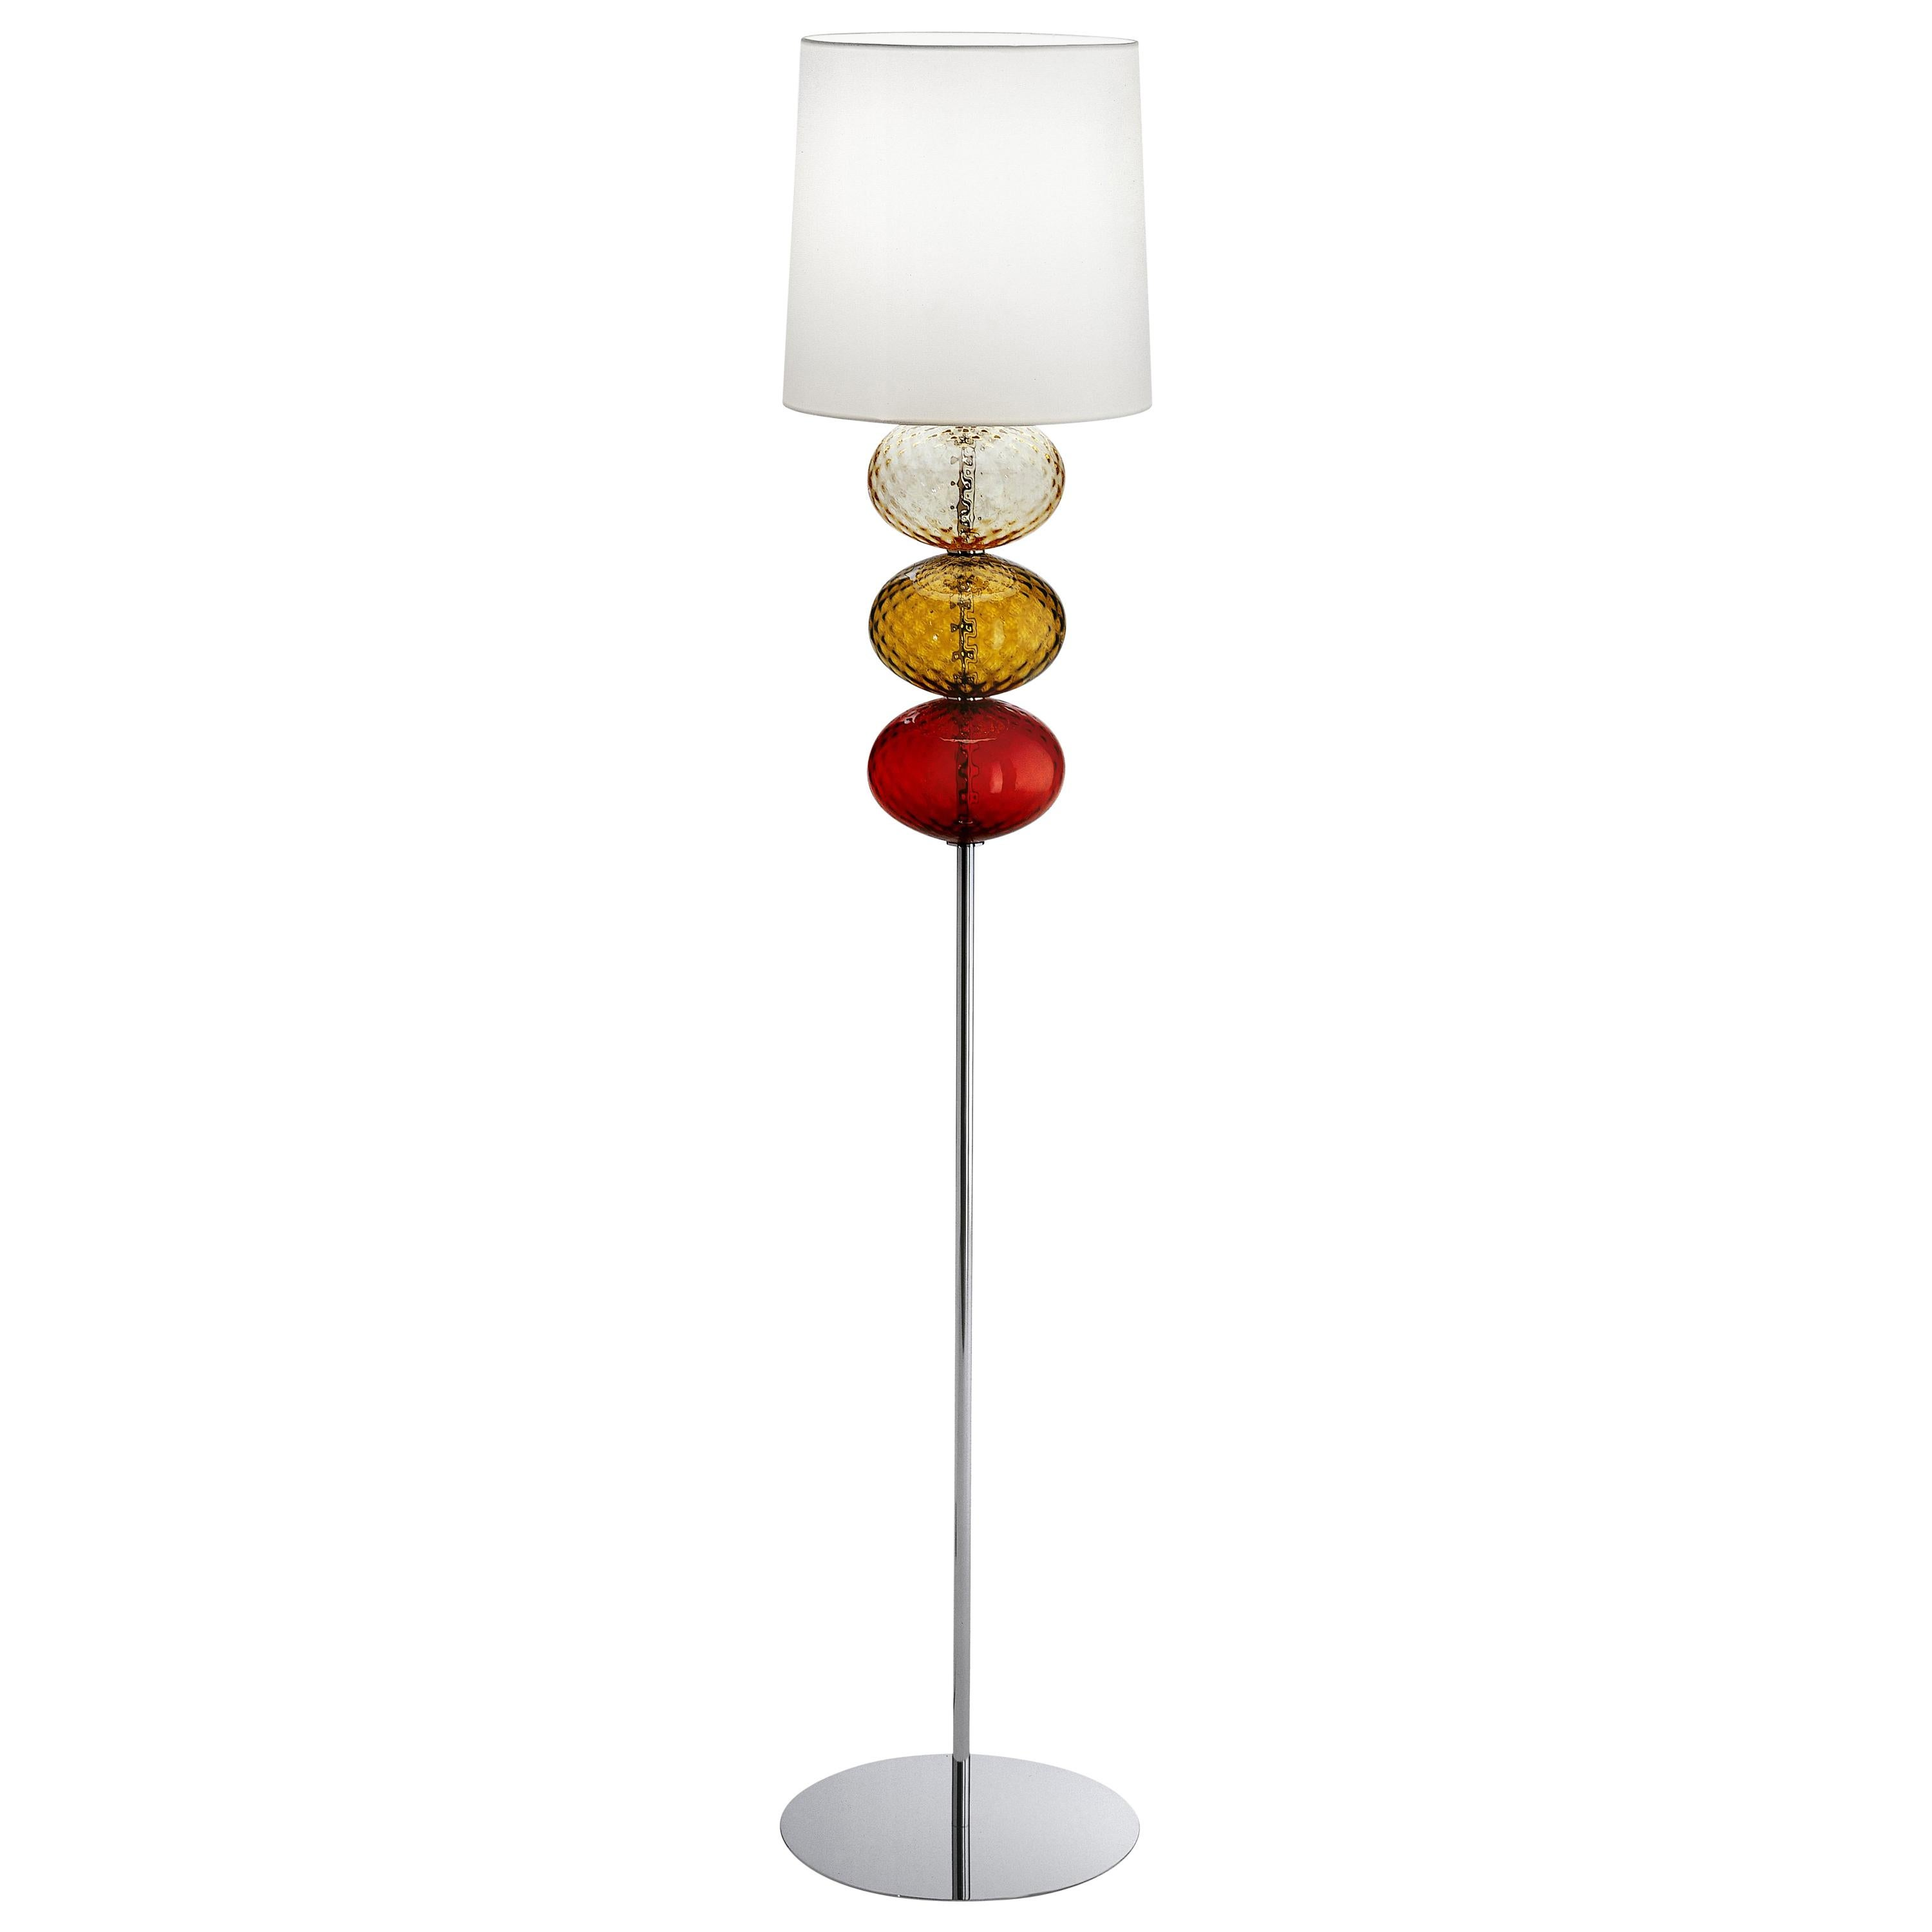 Abat Jour Floor Lamp in Red, Tea and Amber by Venini